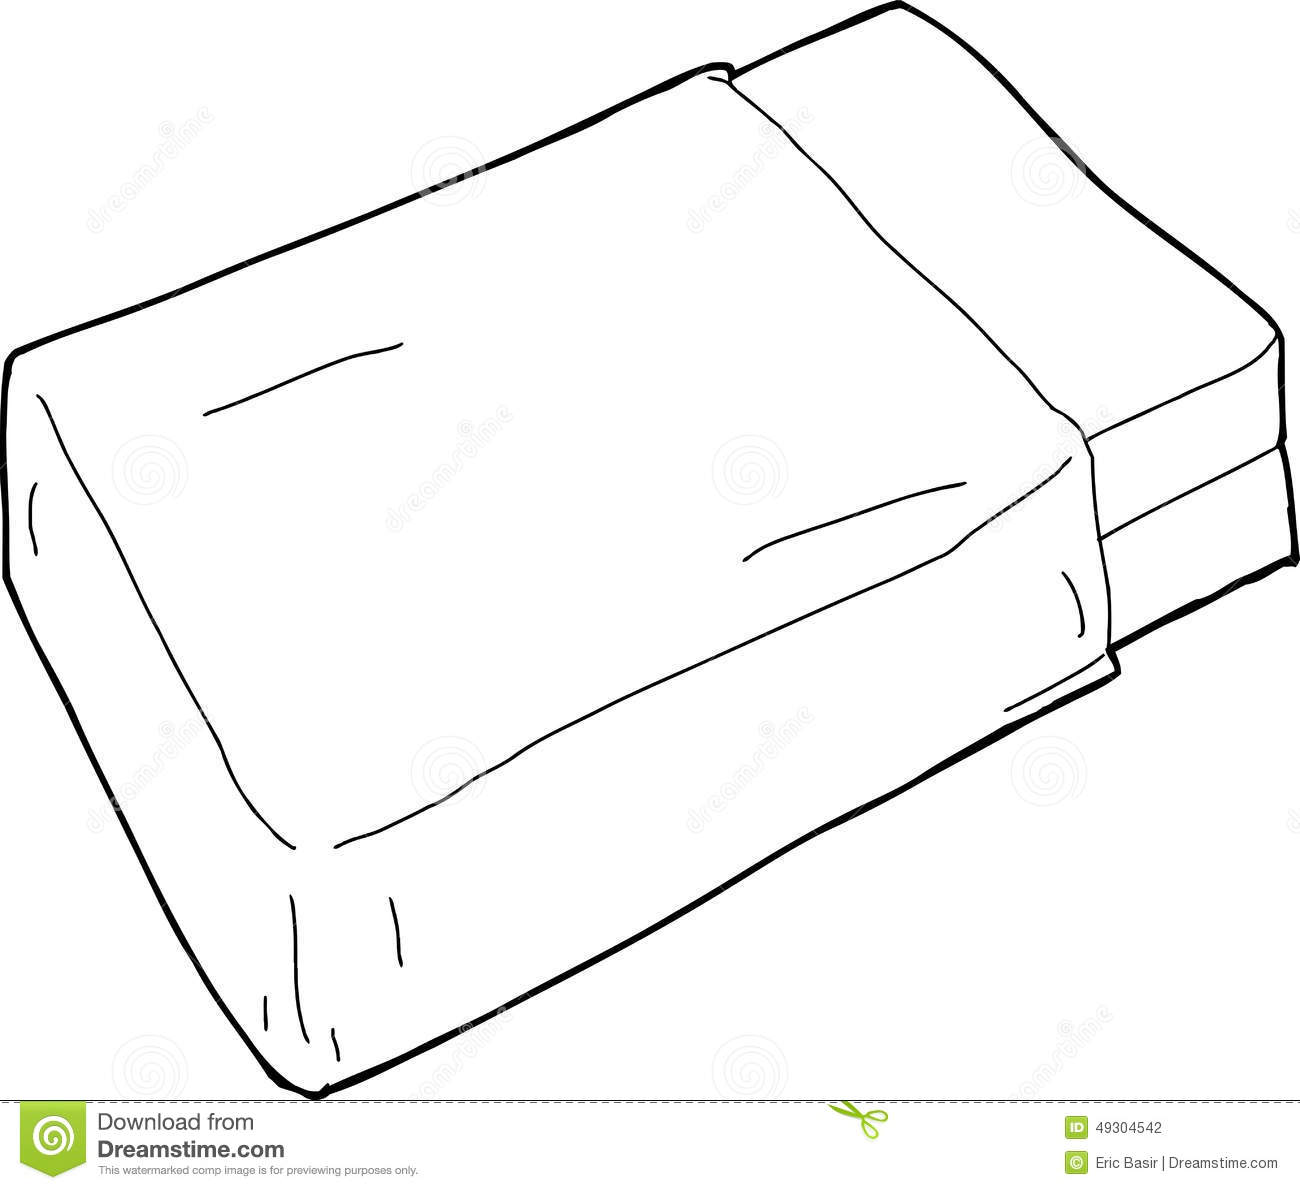 Blanket on bed clipart bangdodo for Picnic blanket coloring page